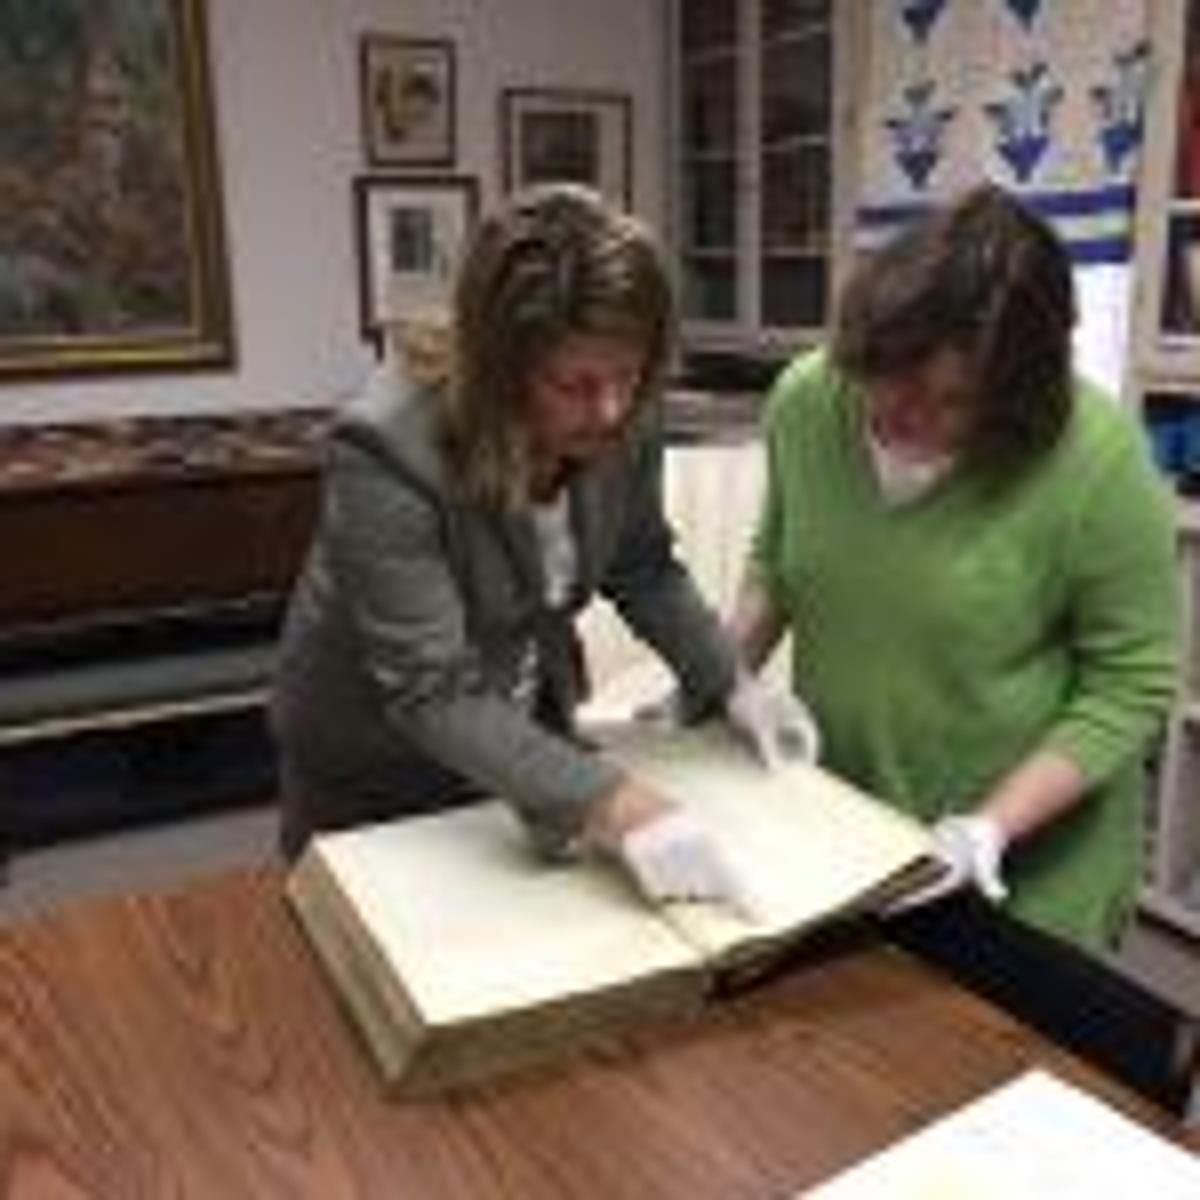 Montgomery Museum presents county court clerk with legal